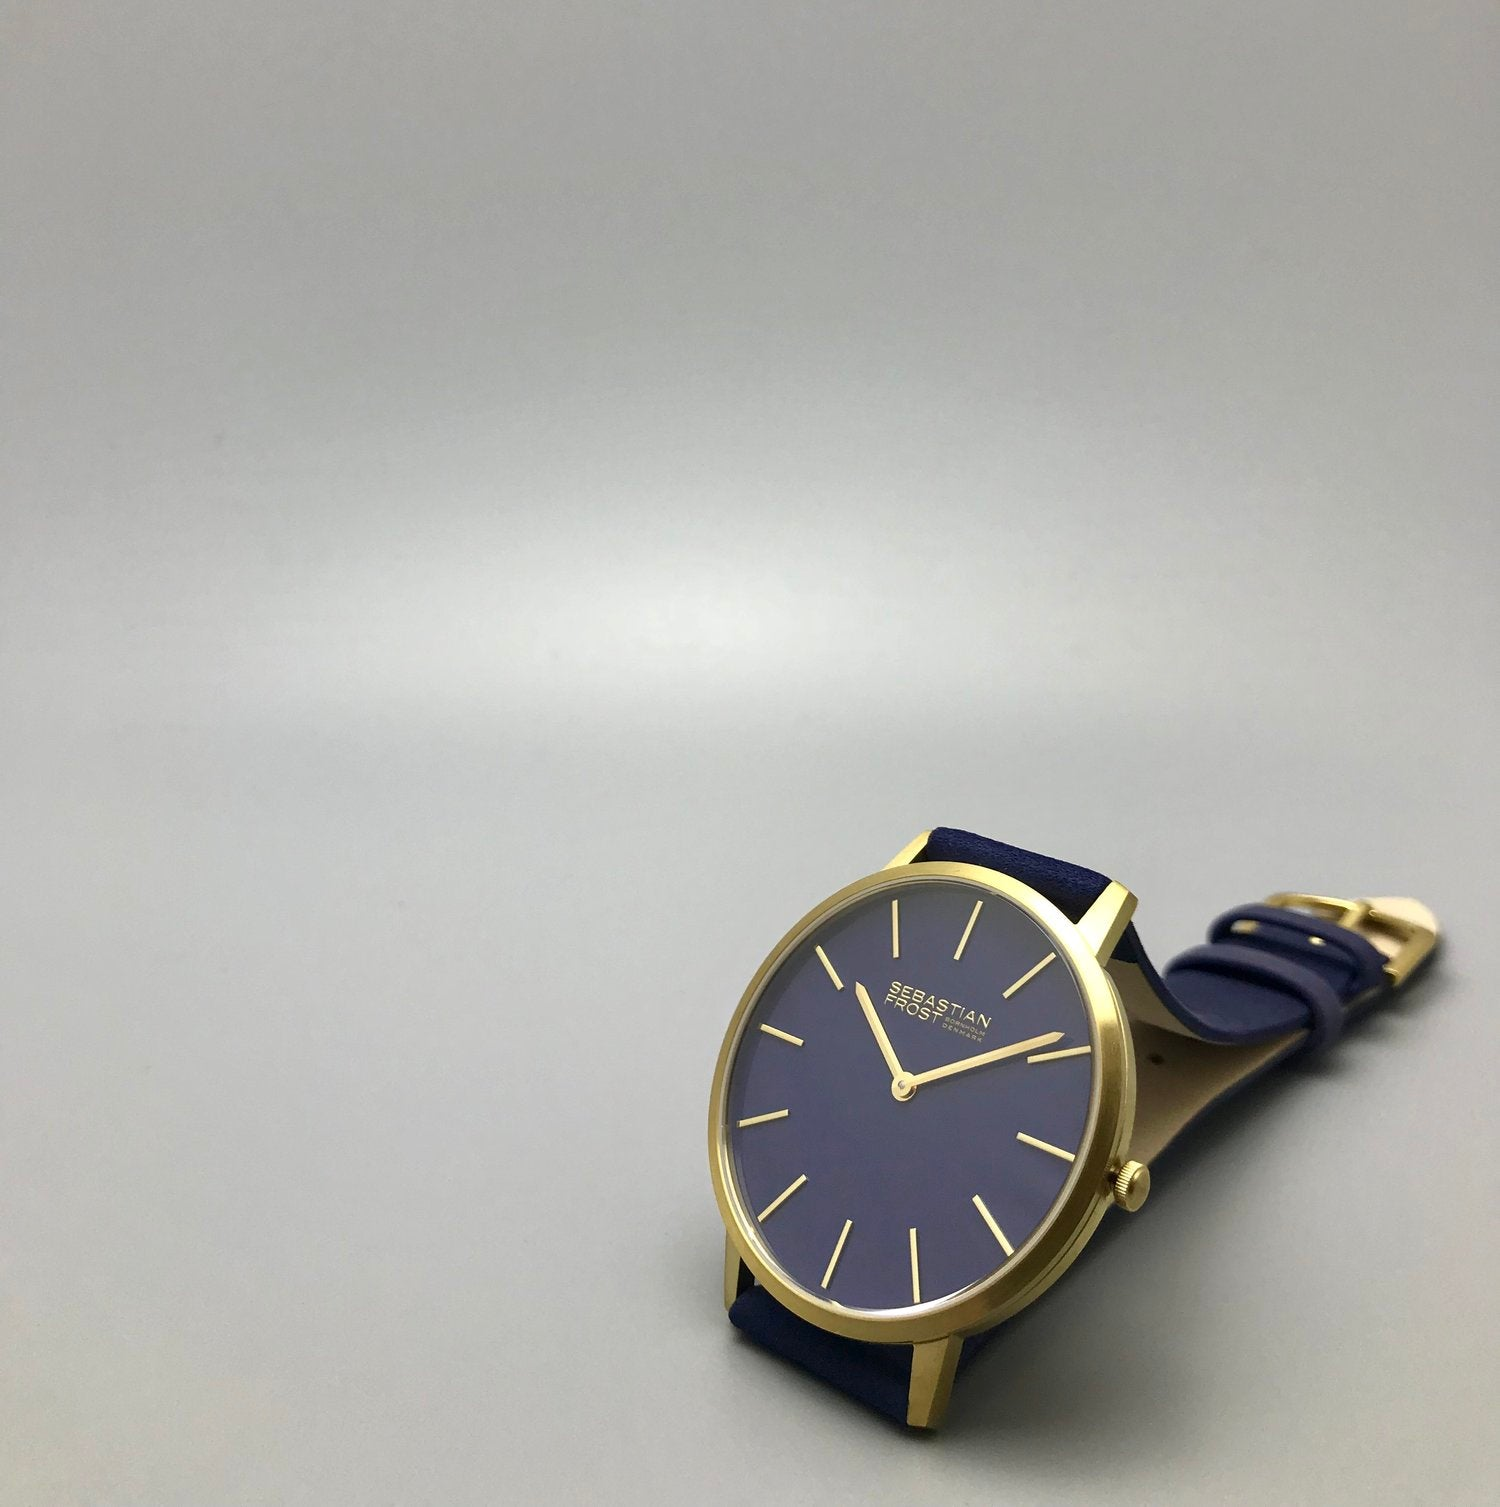 Premium Class Classic Look Watch Blue Gold Jewellery Timeless Design Swiss Mechanism Movement Sapphire Glass